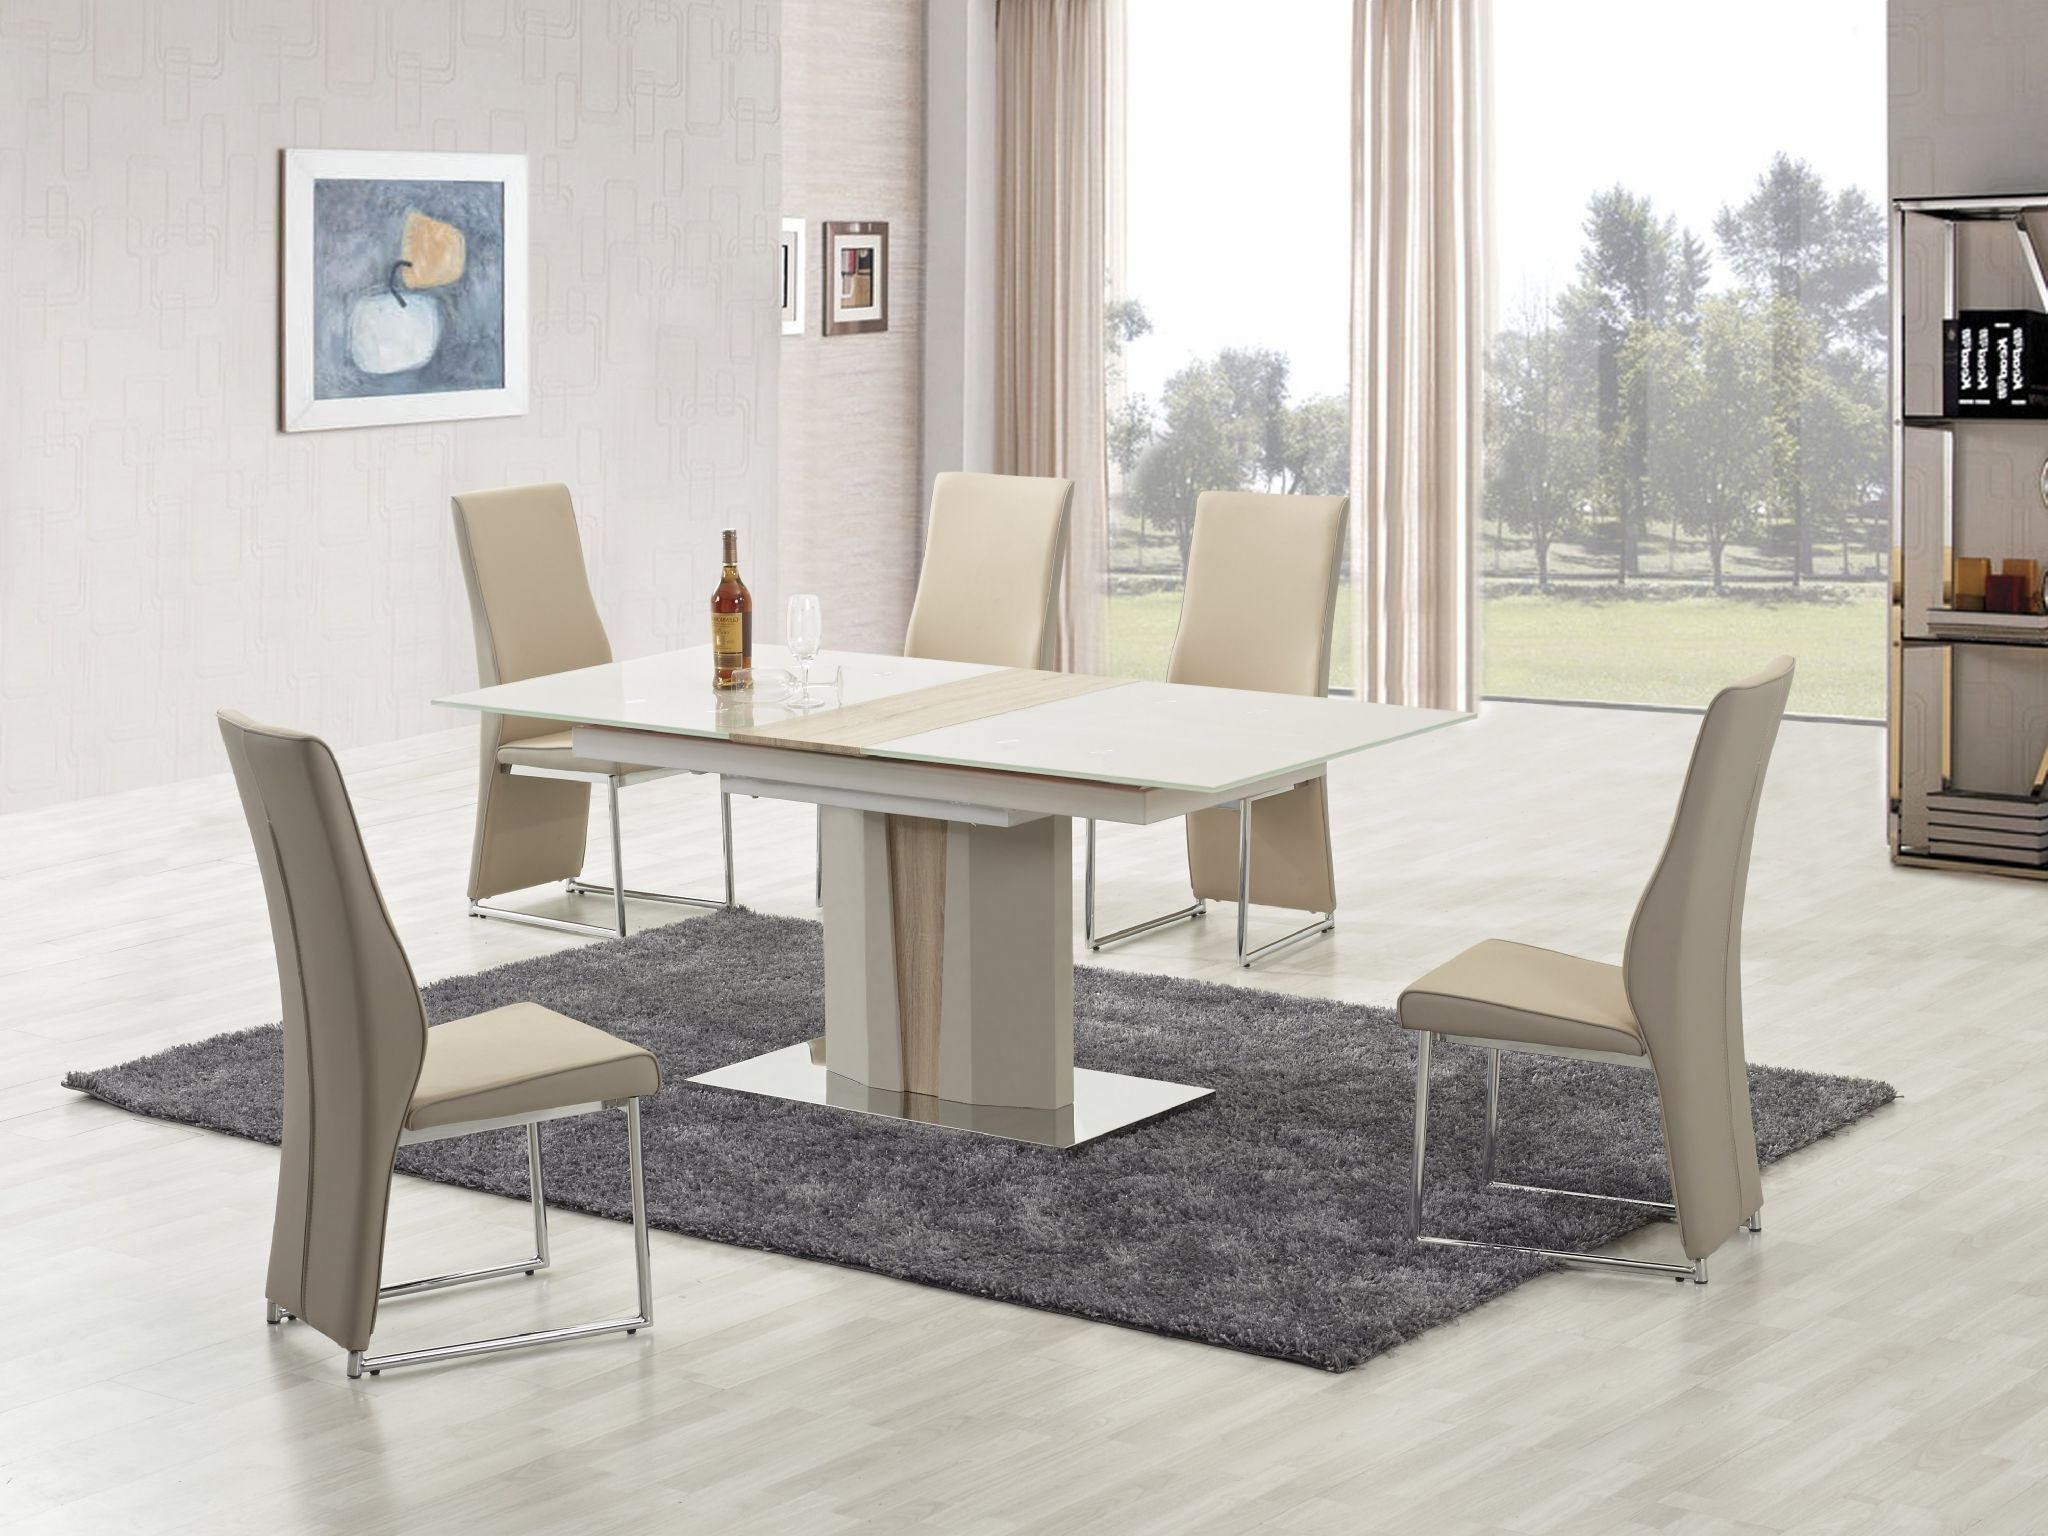 Most Recent Buy Imperial Champagne Extendable Dining Table Intended For 180Cm Dining Tables (View 12 of 25)